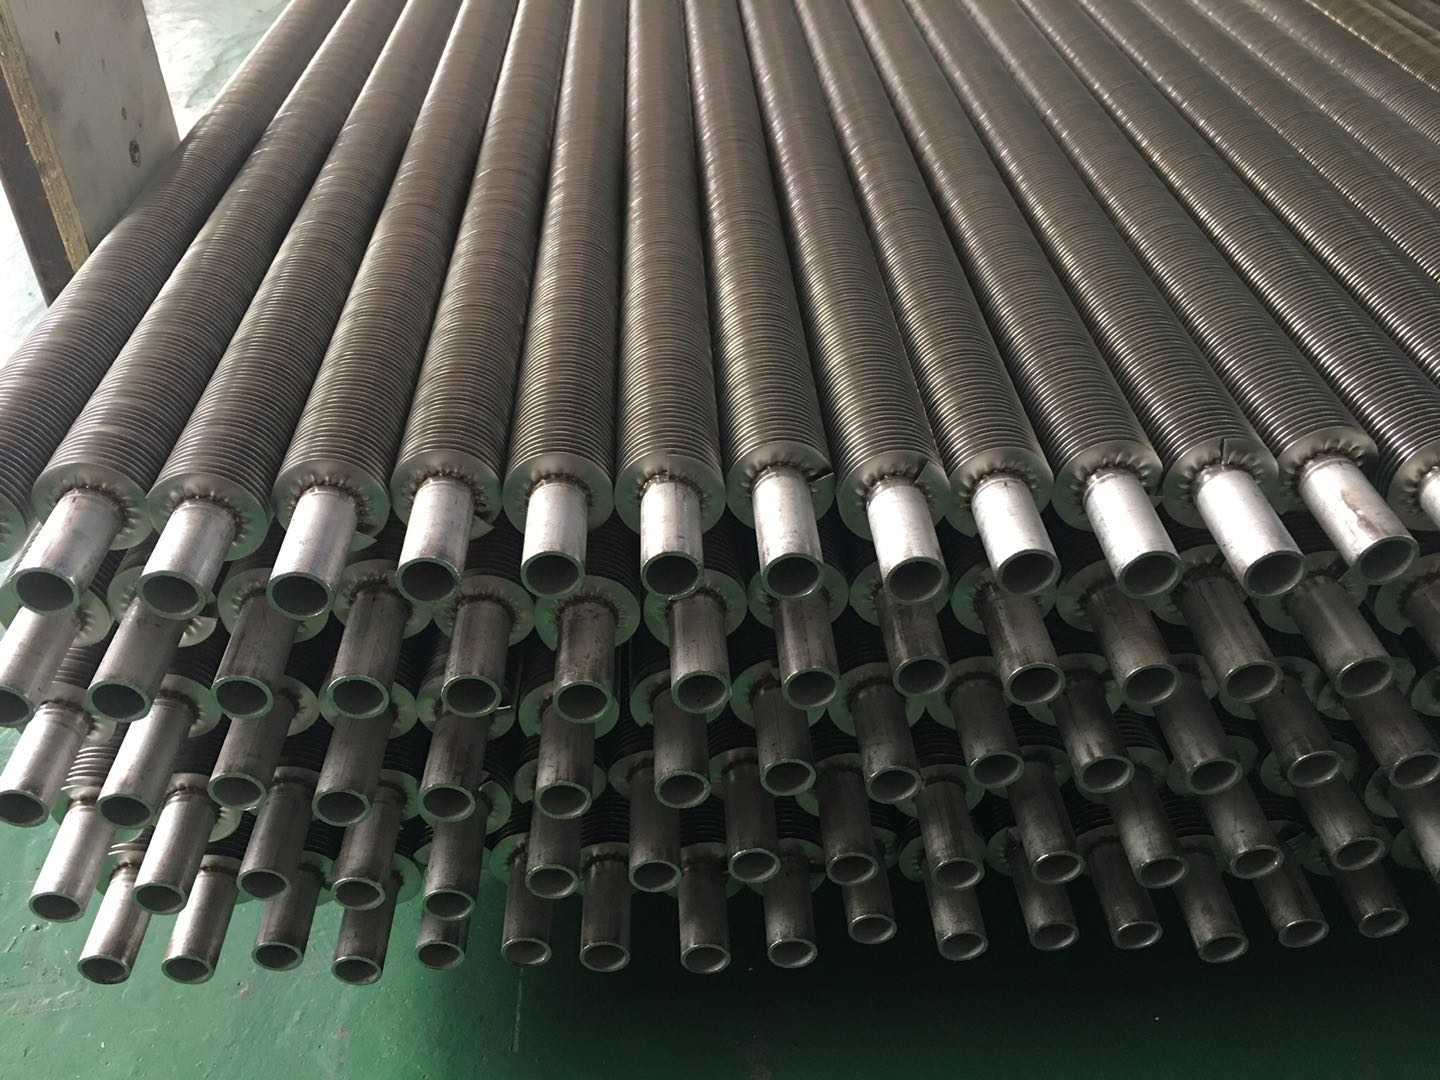 Laser welded finned tubes